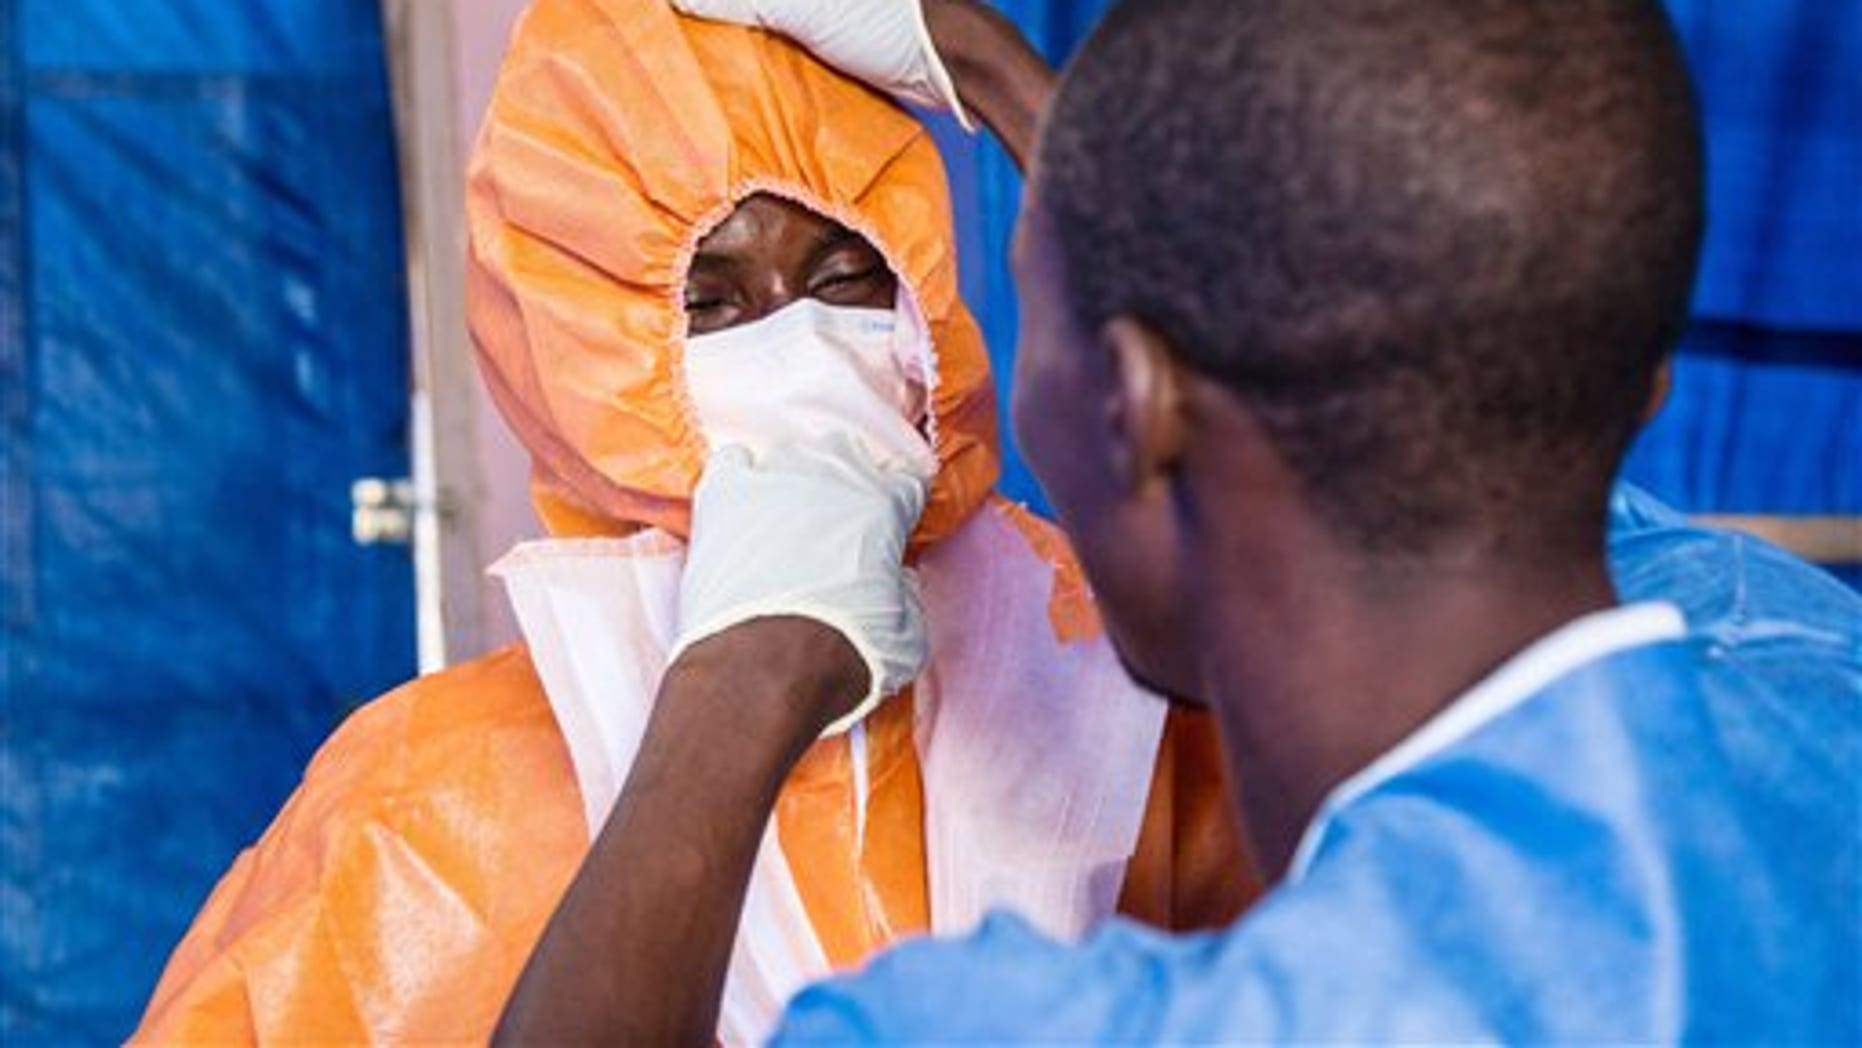 Healthcare workers wear protective gear before entering into an Ebola treatment centre in Hastings, Freetown, Sierra Leone, Wednesday, Oct. 15, 2014. Some doctors in countries hit hardest by the deadly Ebola disease decline to operate on pregnant women for fear the virus could spread. Governments face calls from frightened citizens to bar travel to and from the afflicted region. Meanwhile, the stakes get higher as more people get sick, highlighting a tricky balance between protecting people and preserving their rights in a global crisis. (AP Photo/Michael Duff)